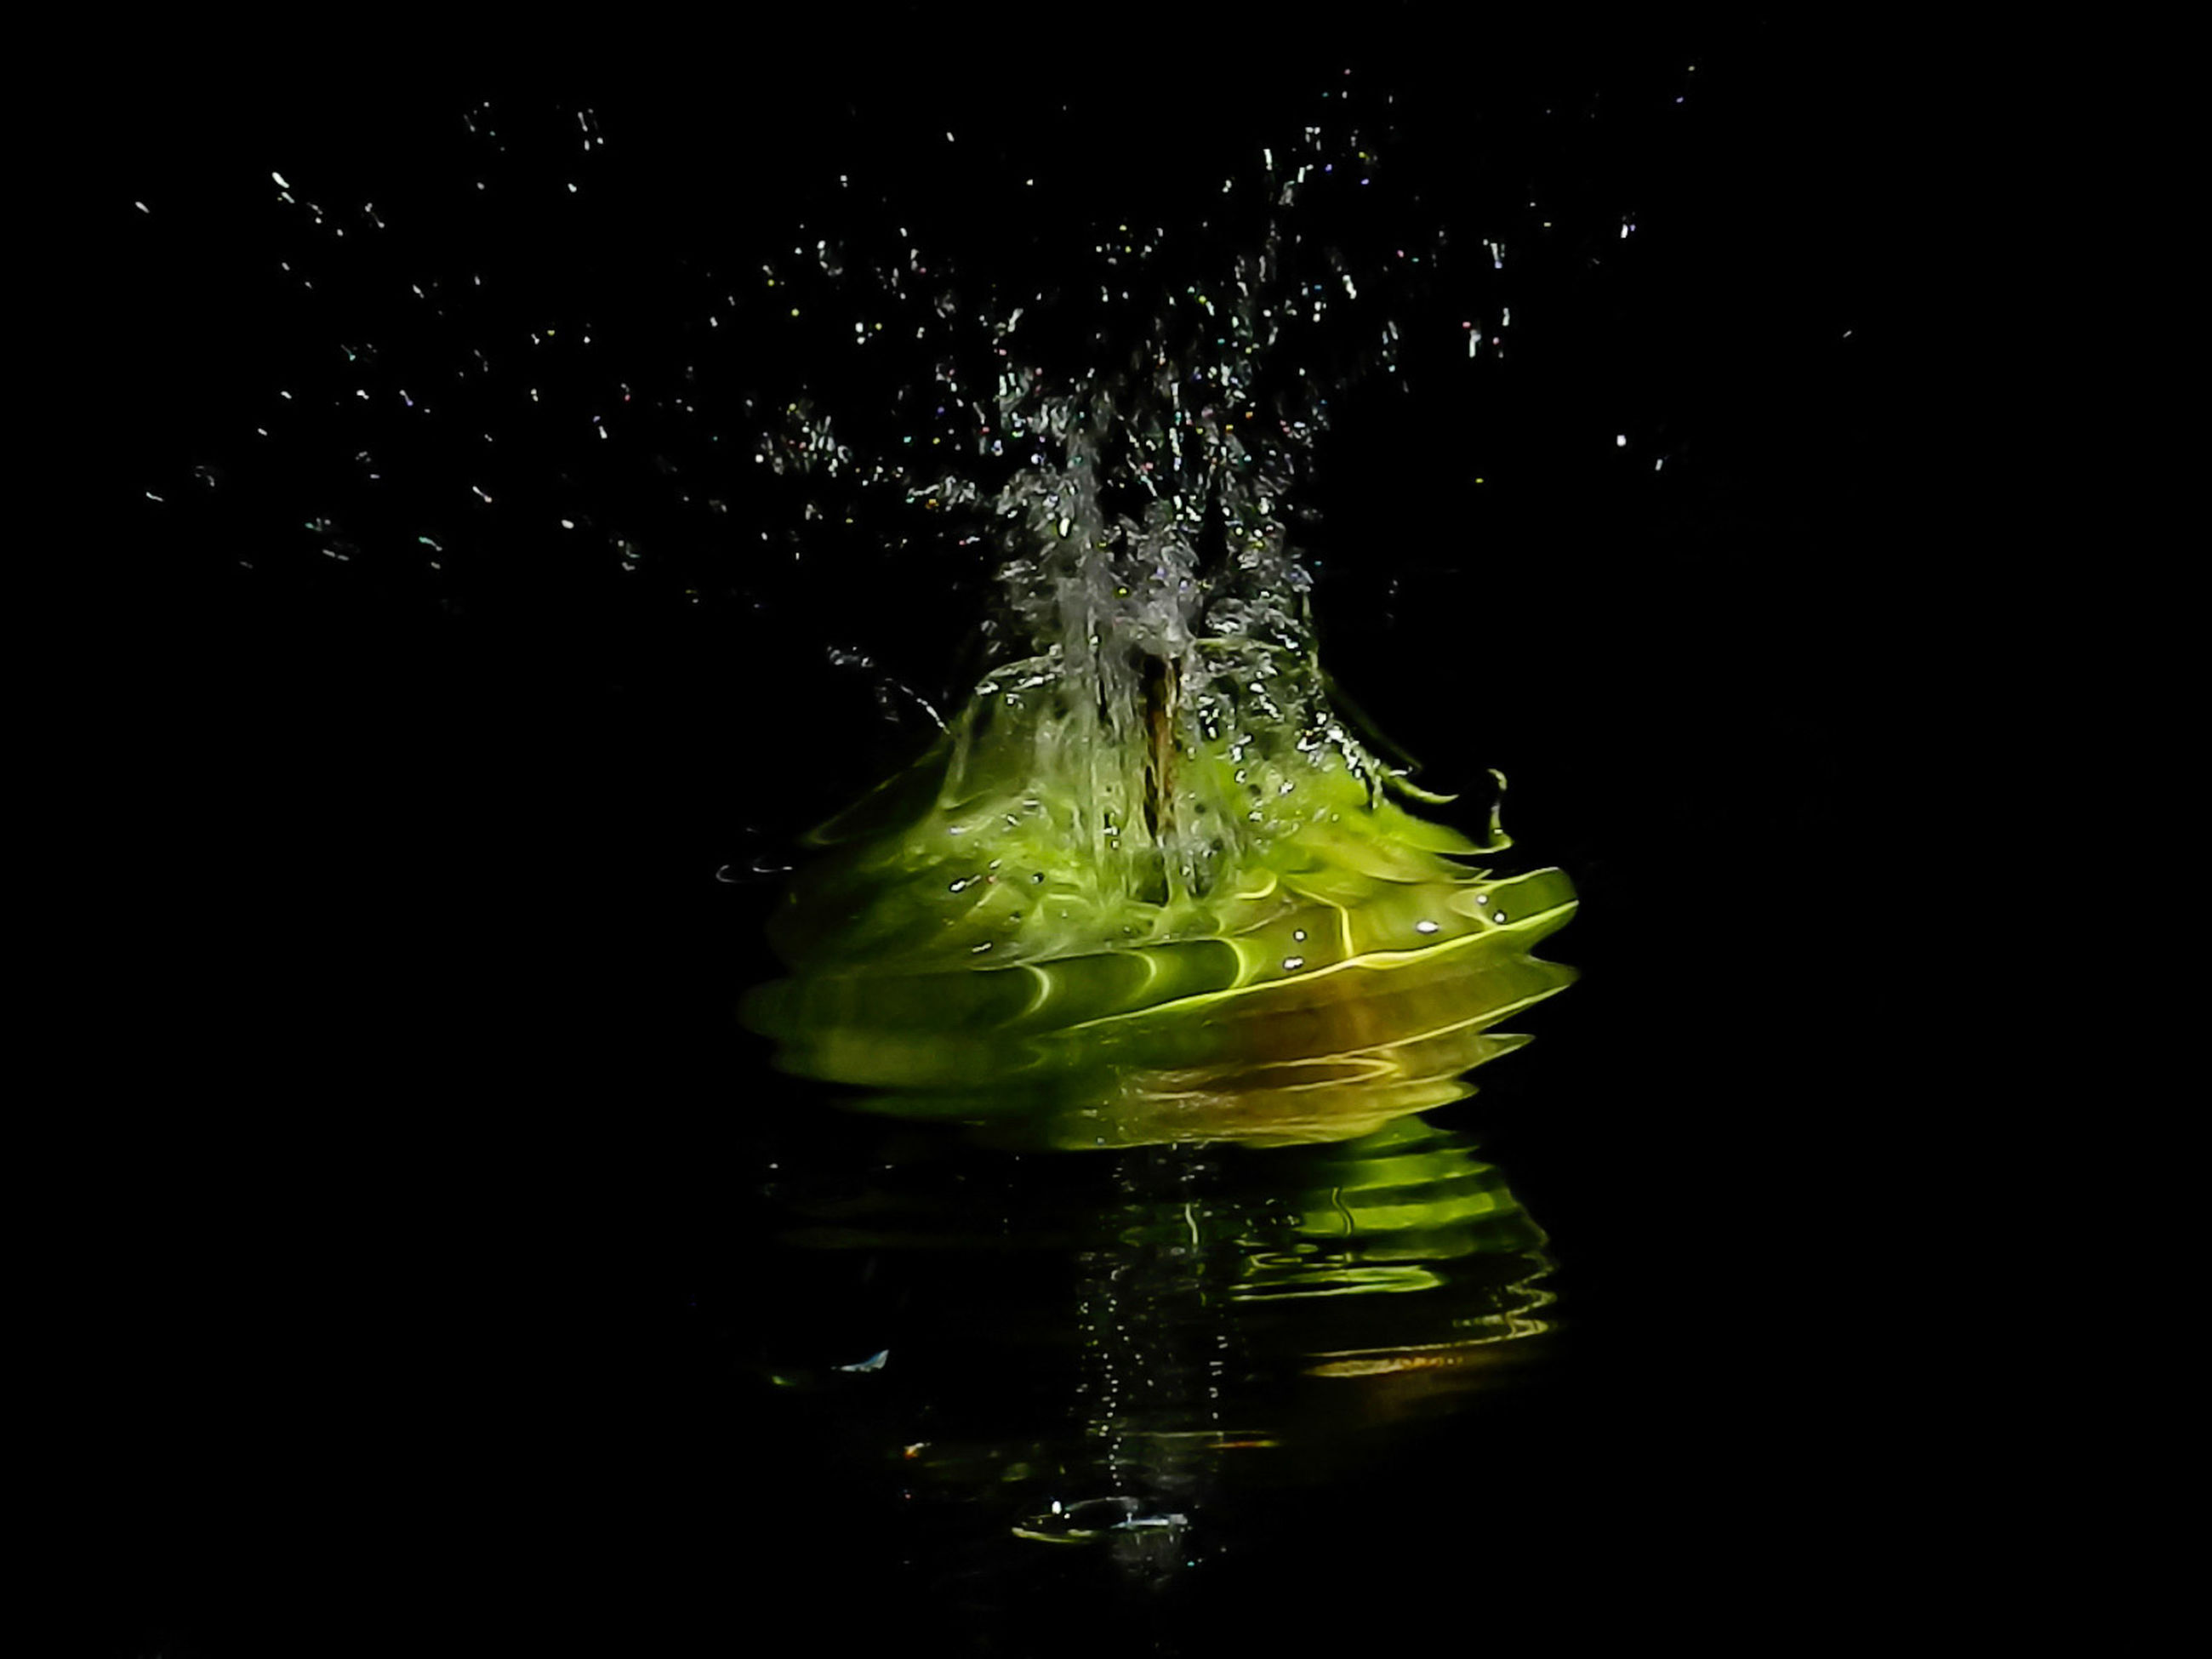 black background, splashing, studio shot, motion, water, food and drink, freshness, indoors, yellow, green, impact, darkness, no people, food, night, healthy eating, drop, refreshment, nature, wellbeing, reflection, light, drink, close-up, falling, macro photography, copy space, leaf